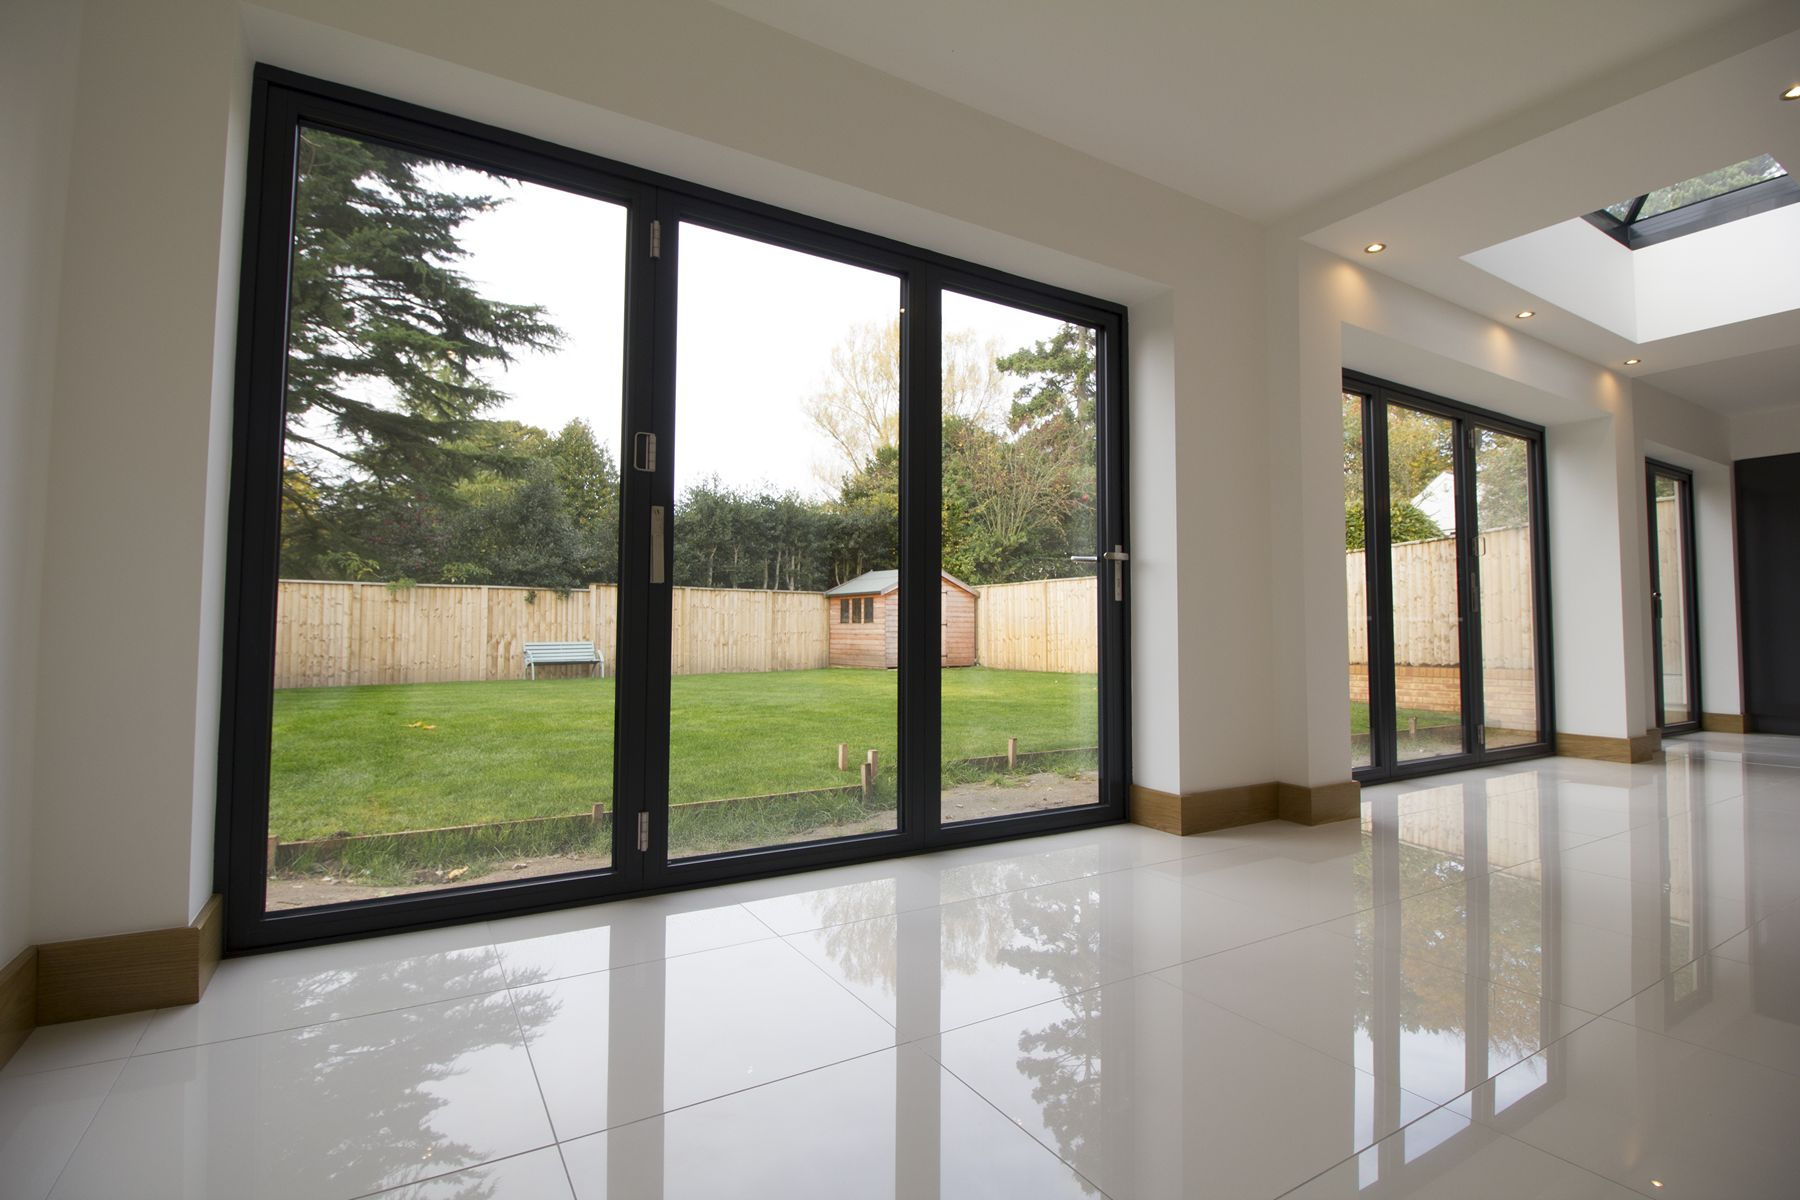 Triple aluminium bifold door installation Wirral. & Why Choose Centor Bifolding Doors | Centor Bifolds | John Knight Glass